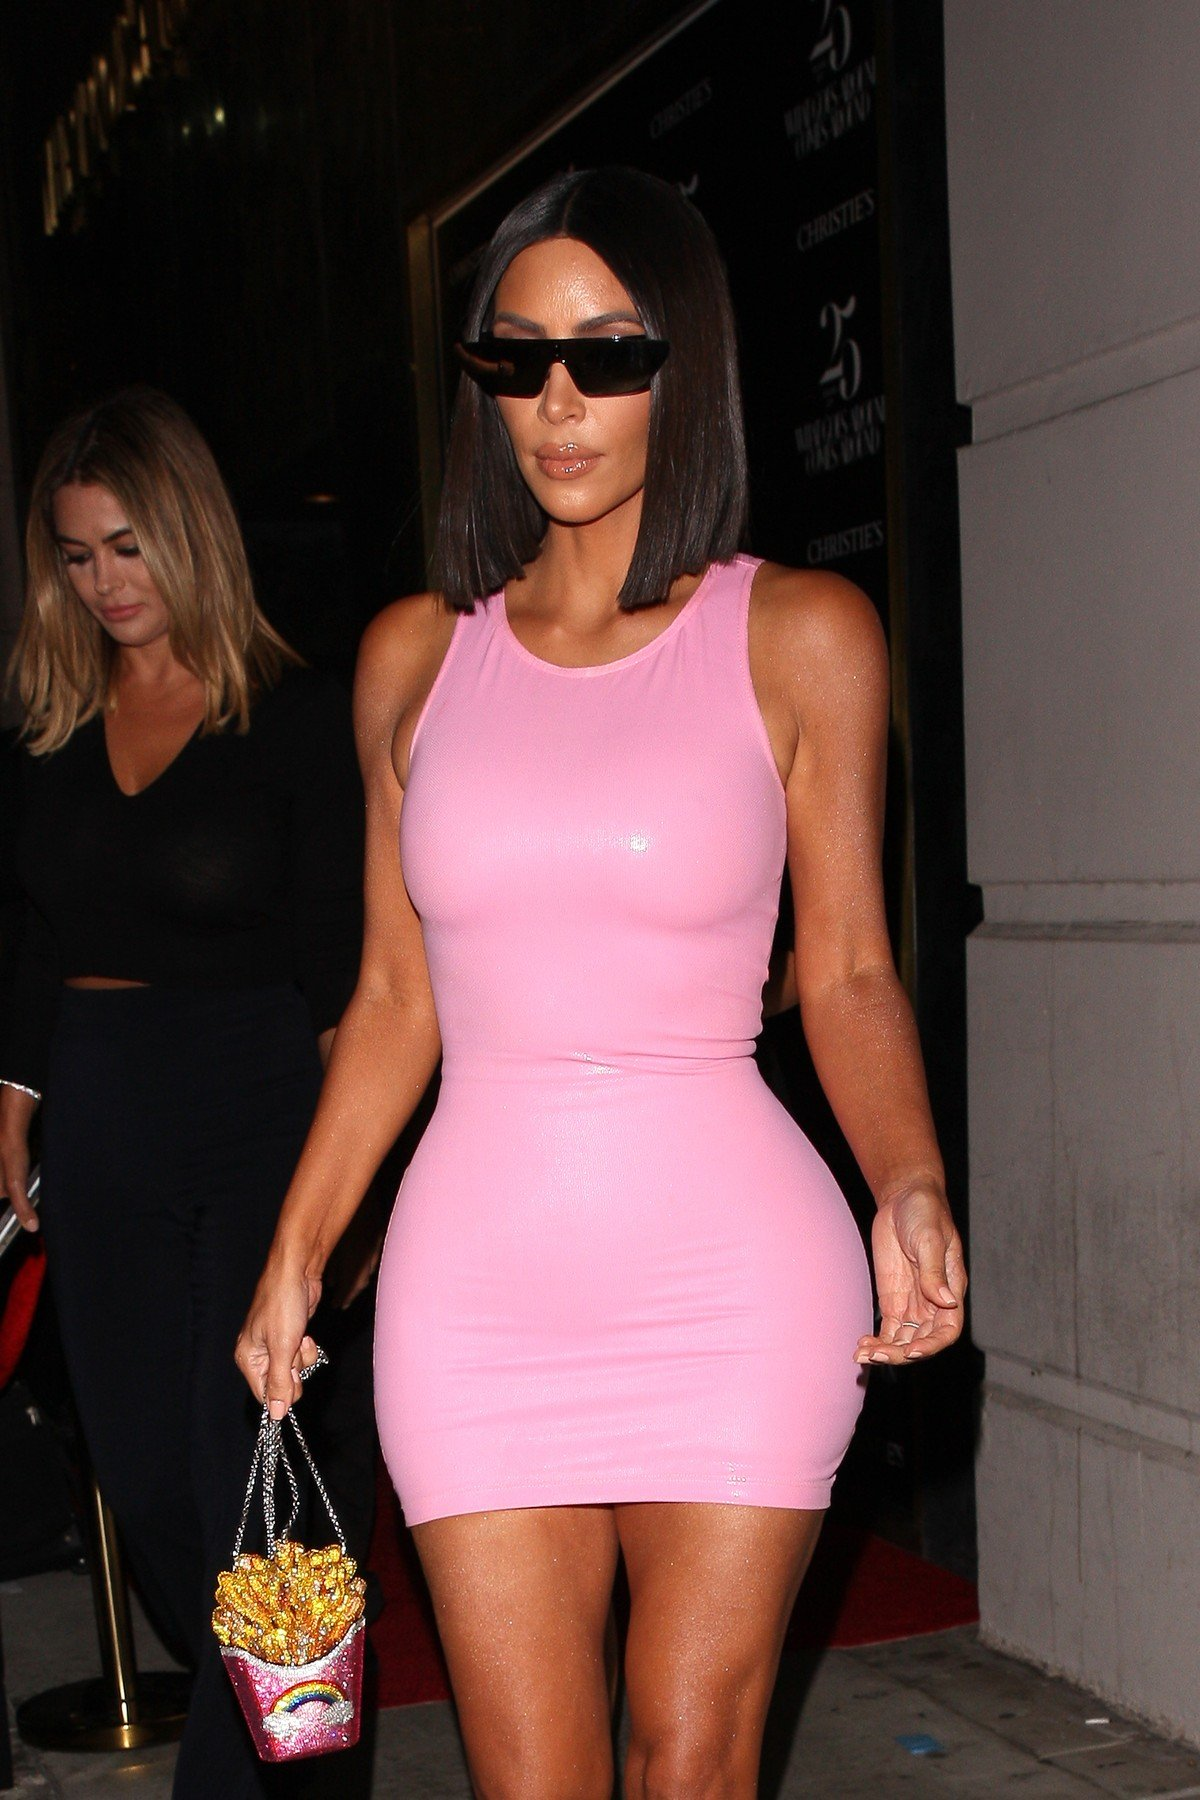 Kim Kardashian shows off her curvy figure in a pink latex dress as she is spotted leaving a event with friends in Beverly Hills. Kim is carrying a french fries inspired purse in hand. 21 Aug 2018, Image: 383549761, License: Rights-managed, Restrictions: World Rights, Model Release: no, Credit line: Profimedia, Mega Agency